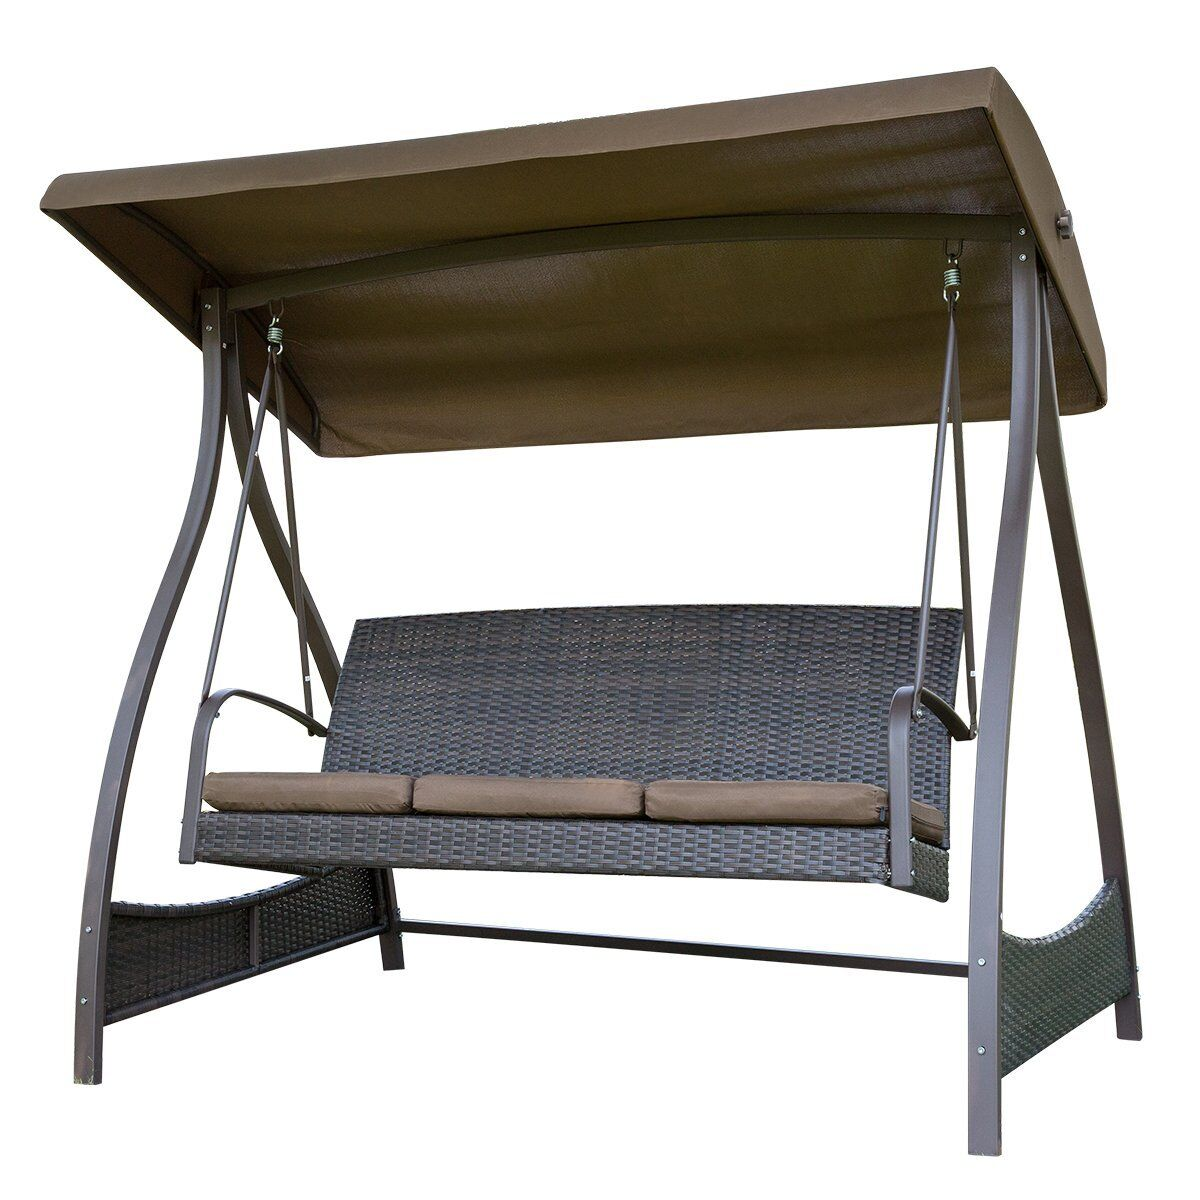 Flavin Garden Canopy Lounger Porch Swing with Stand